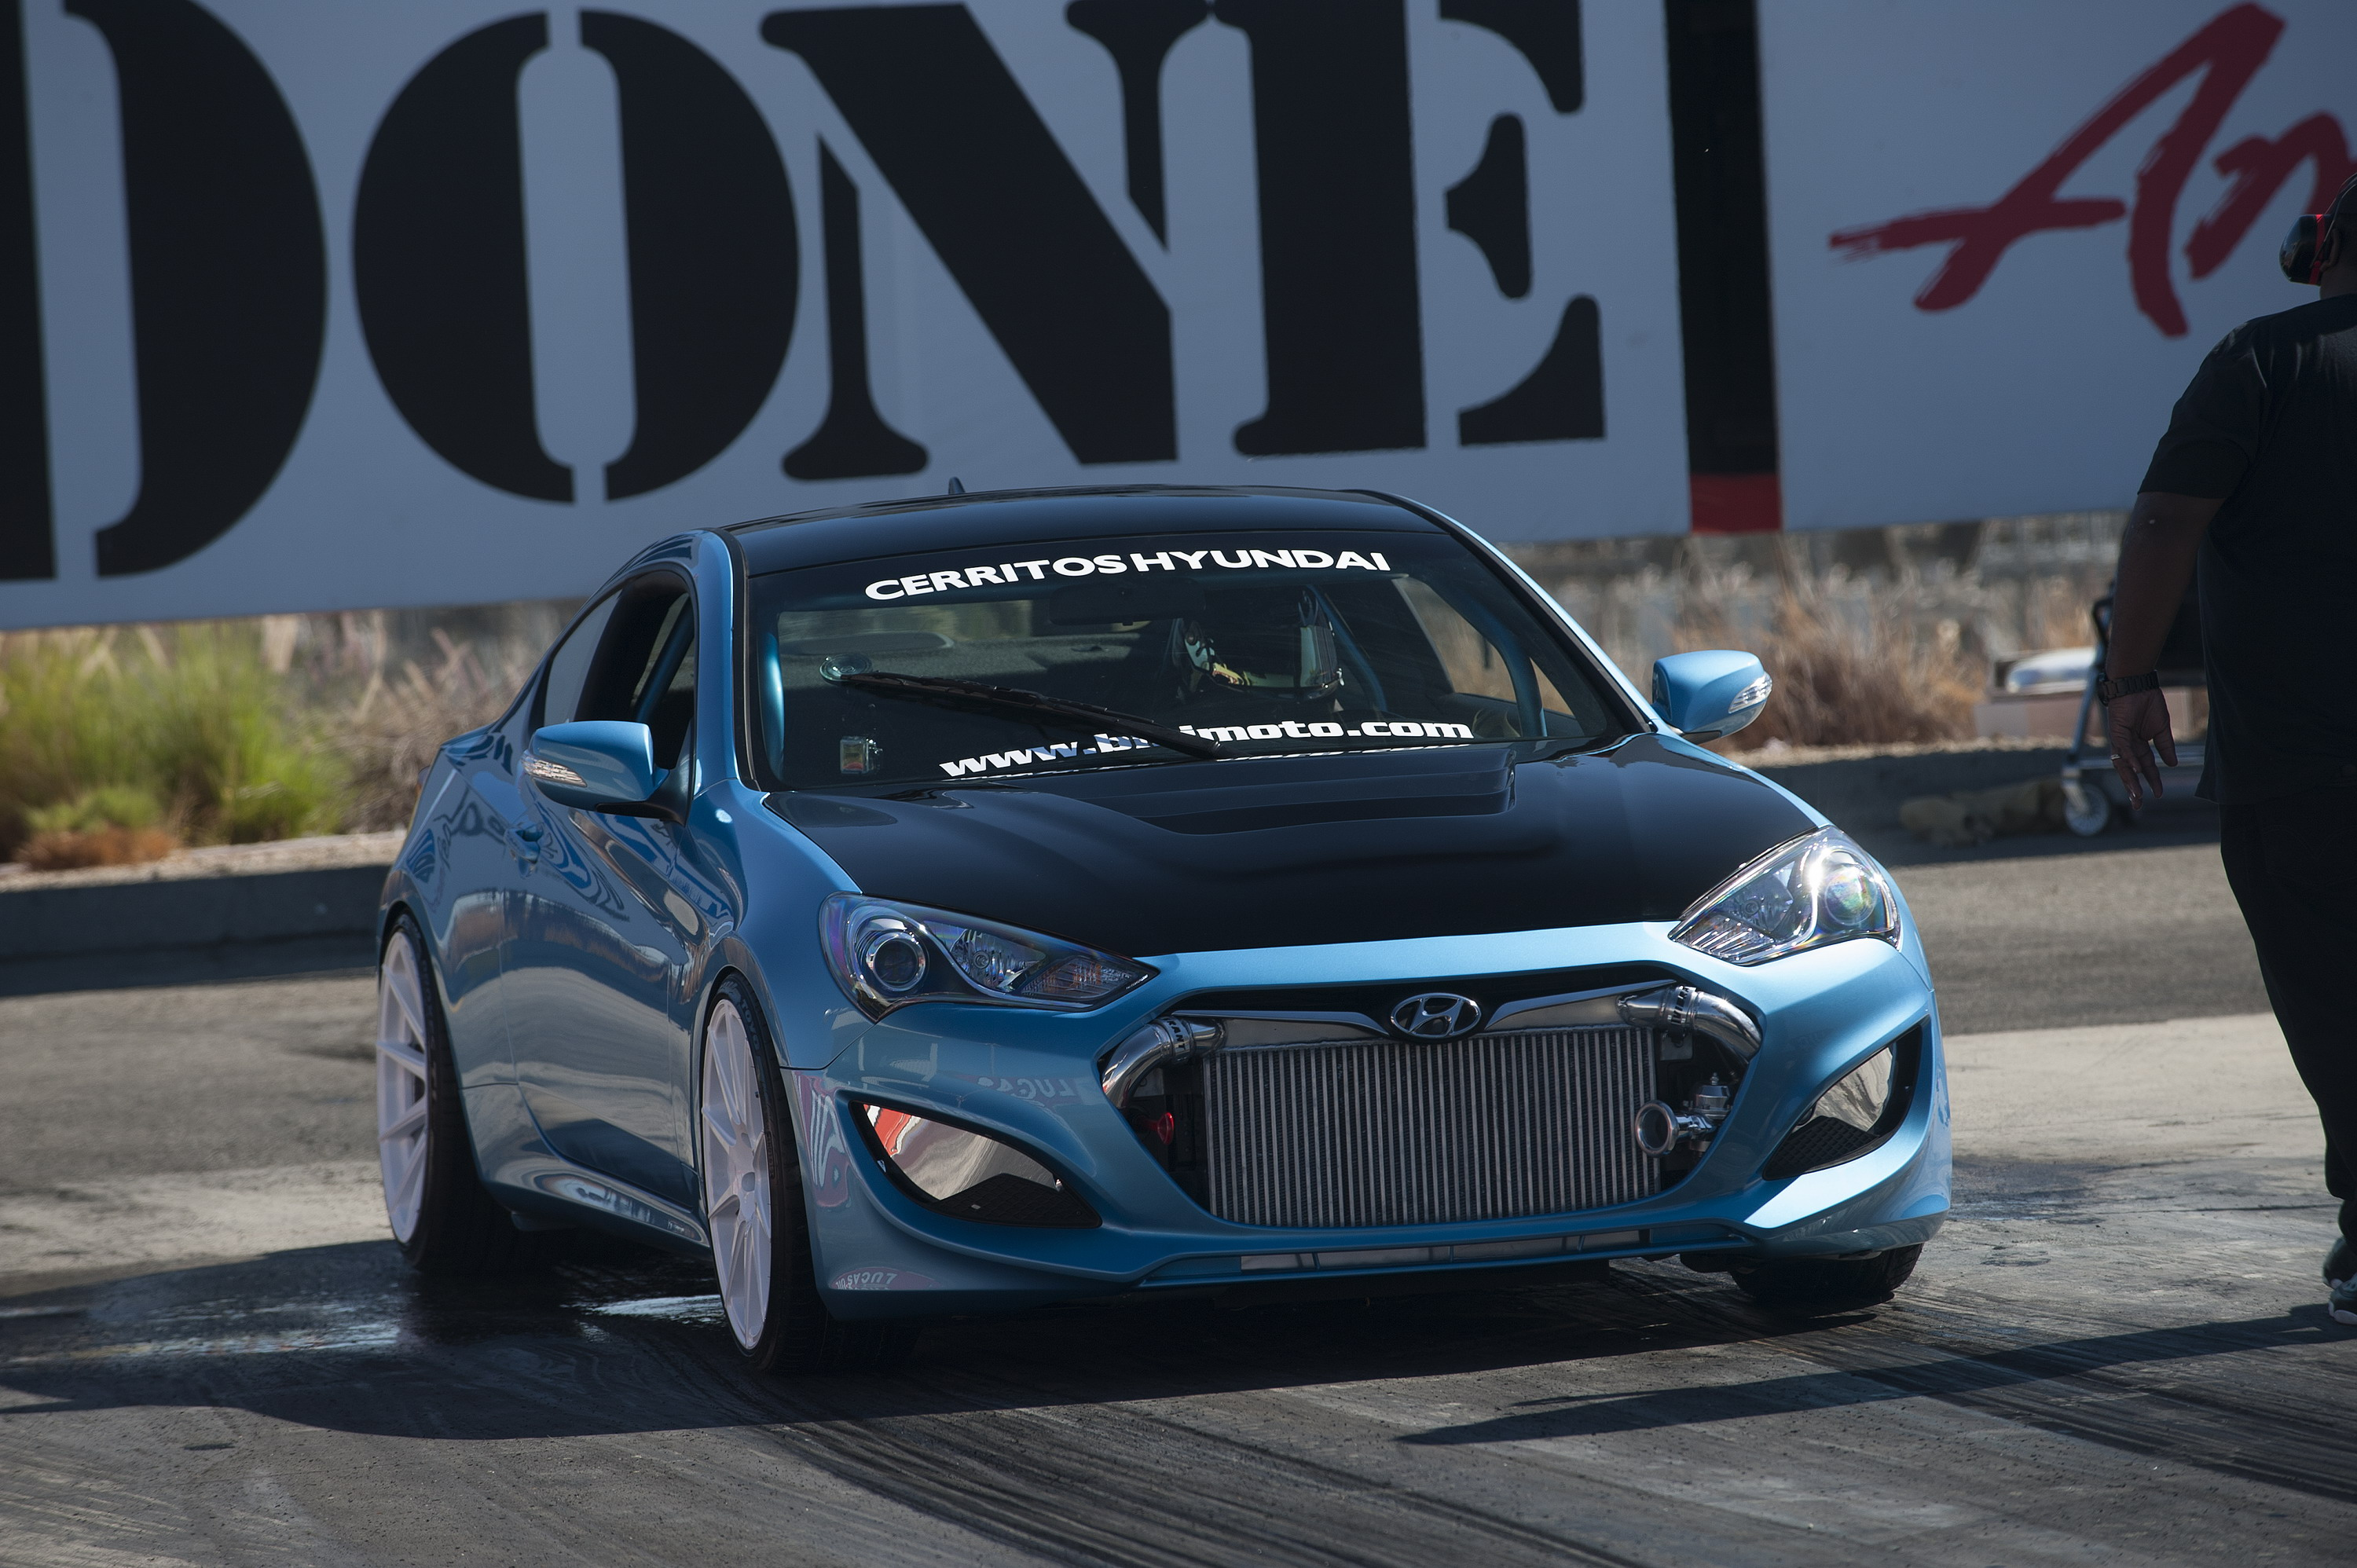 Top Fastest Cars >> 2014 Hyundai Genesis Coupe By Bisimoto Engineering | Top Speed